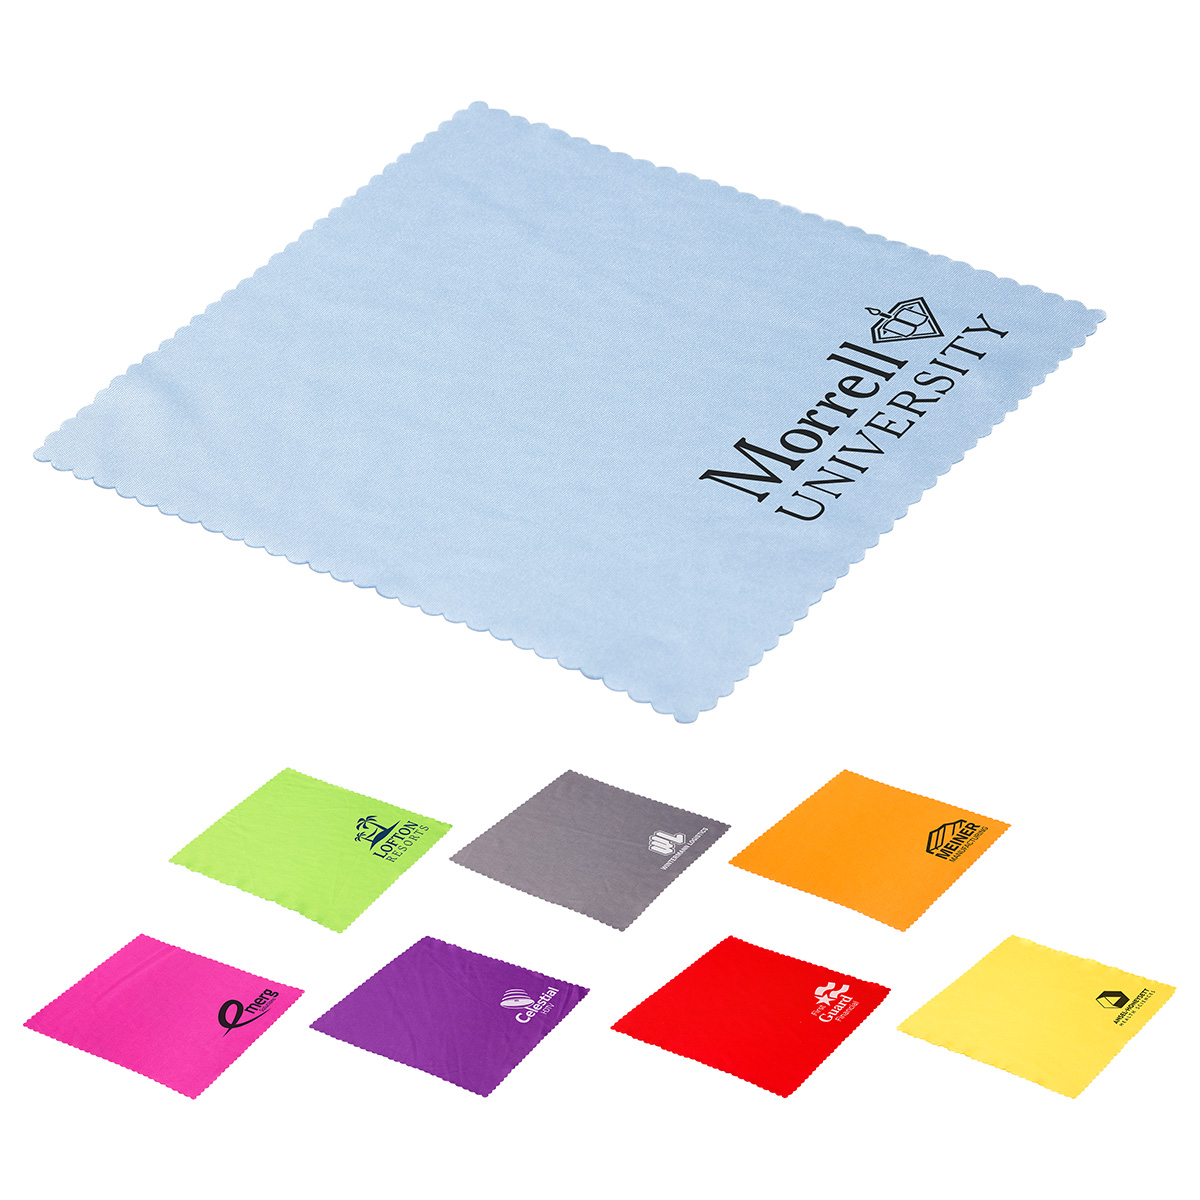 Value Plus Microfiber Cloth, WPC-VM17 - 1 Colour Imprint